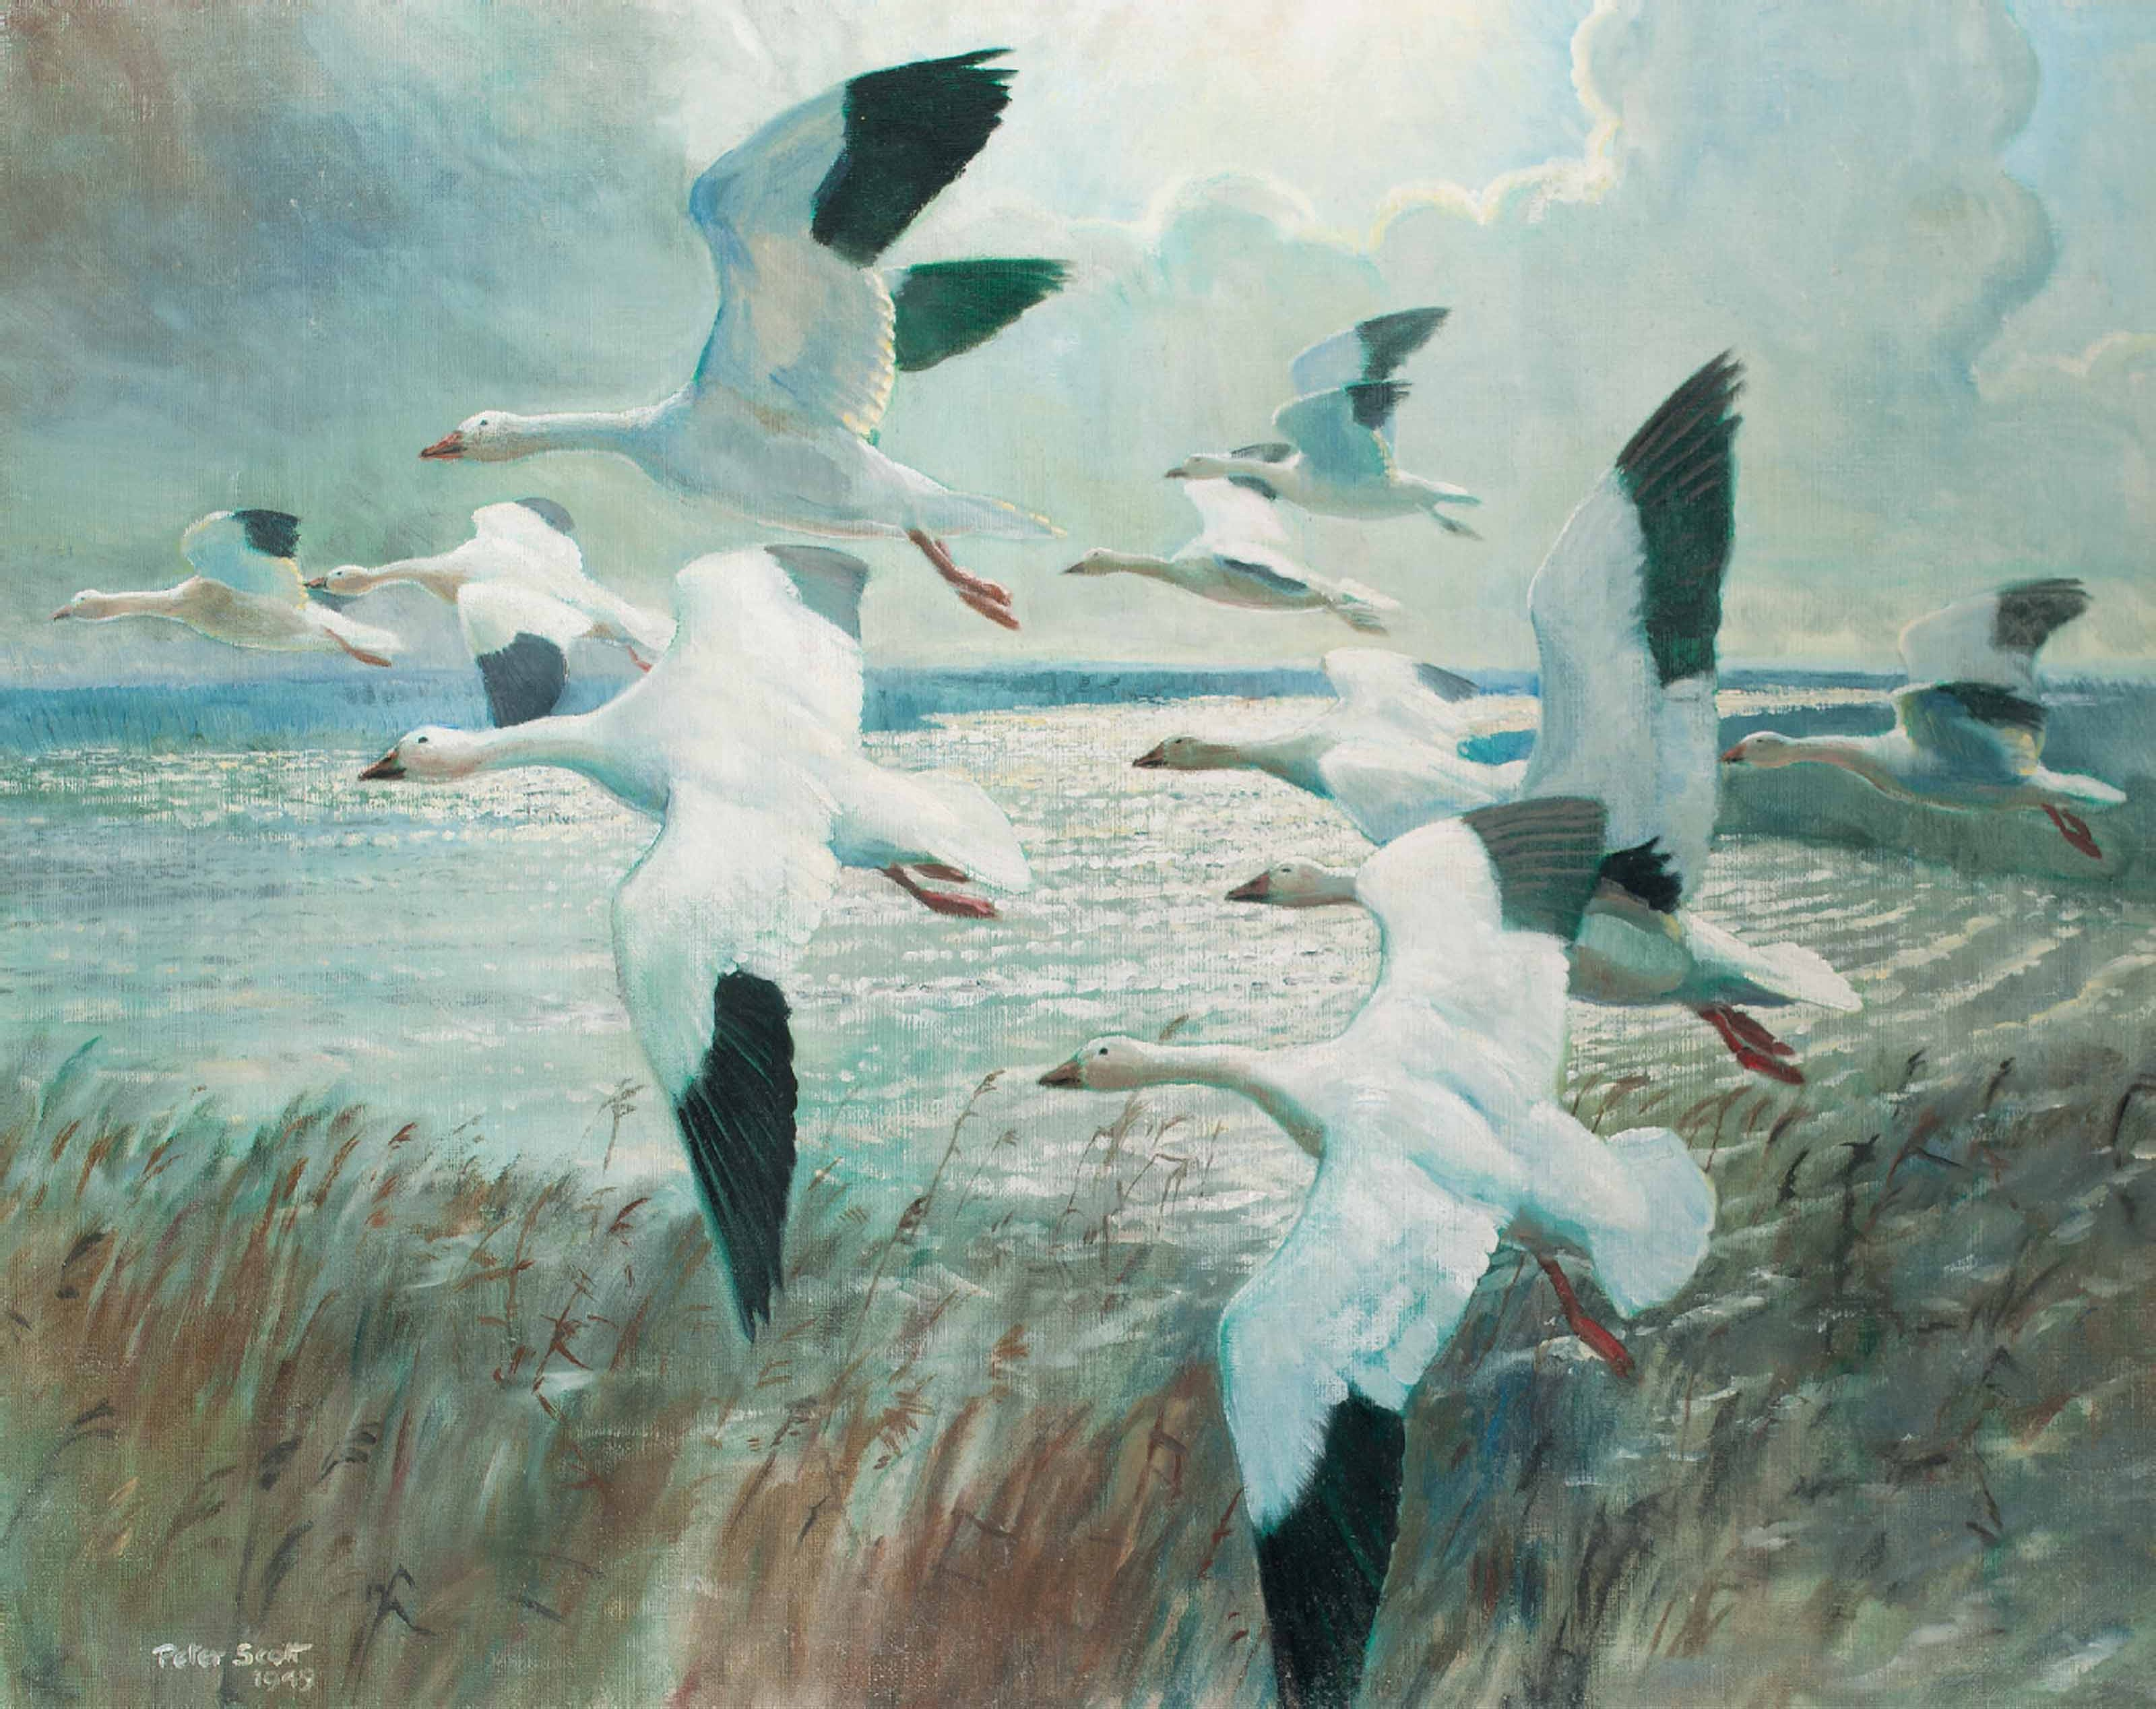 Snow geese before the squall